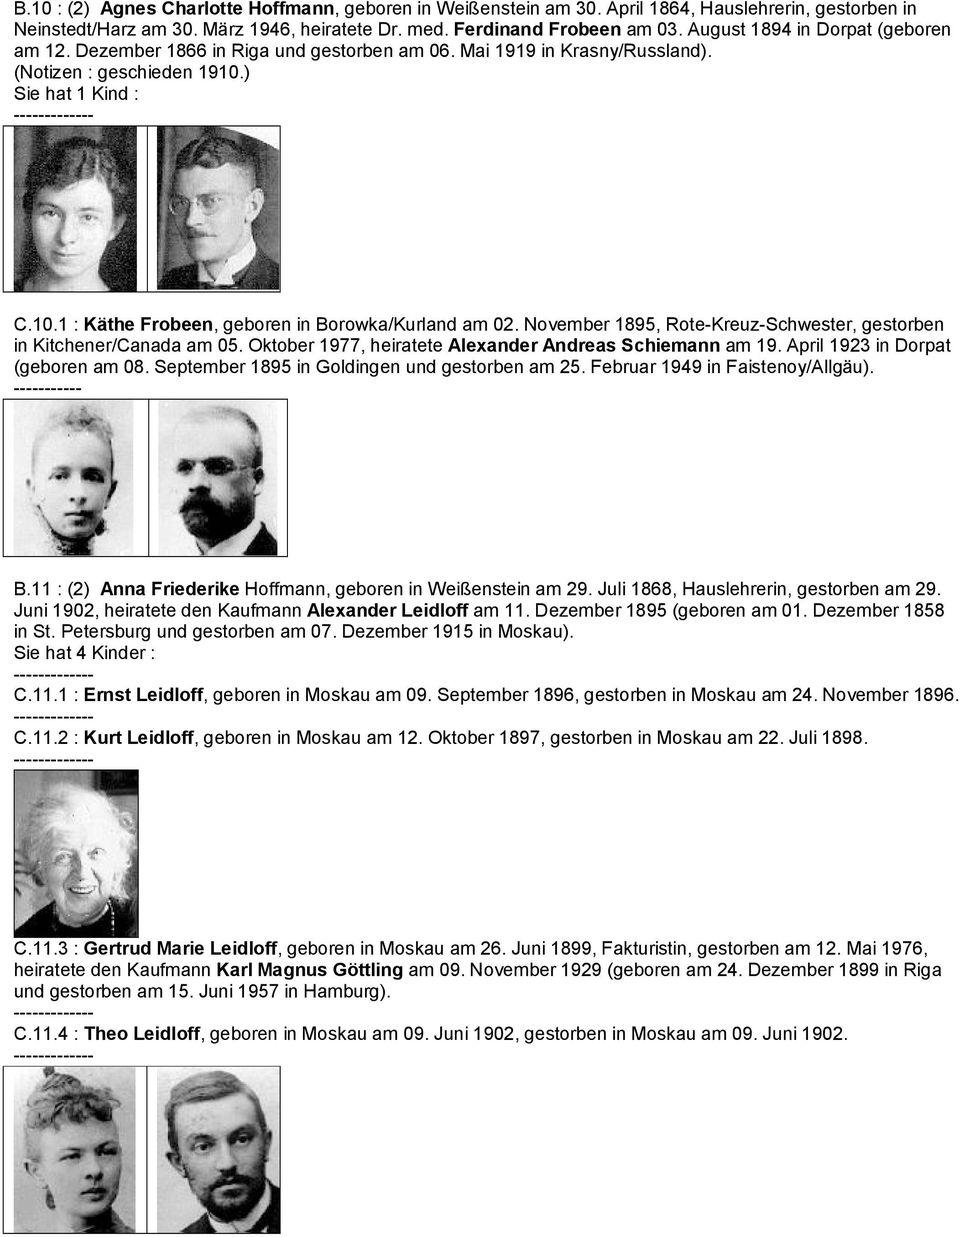 November 1895, Rote-Kreuz-Schwester, gestorben in Kitchener/Canada am 05. Oktober 1977, heiratete Alexander Andreas Schiemann am 19. April 1923 in Dorpat (geboren am 08.